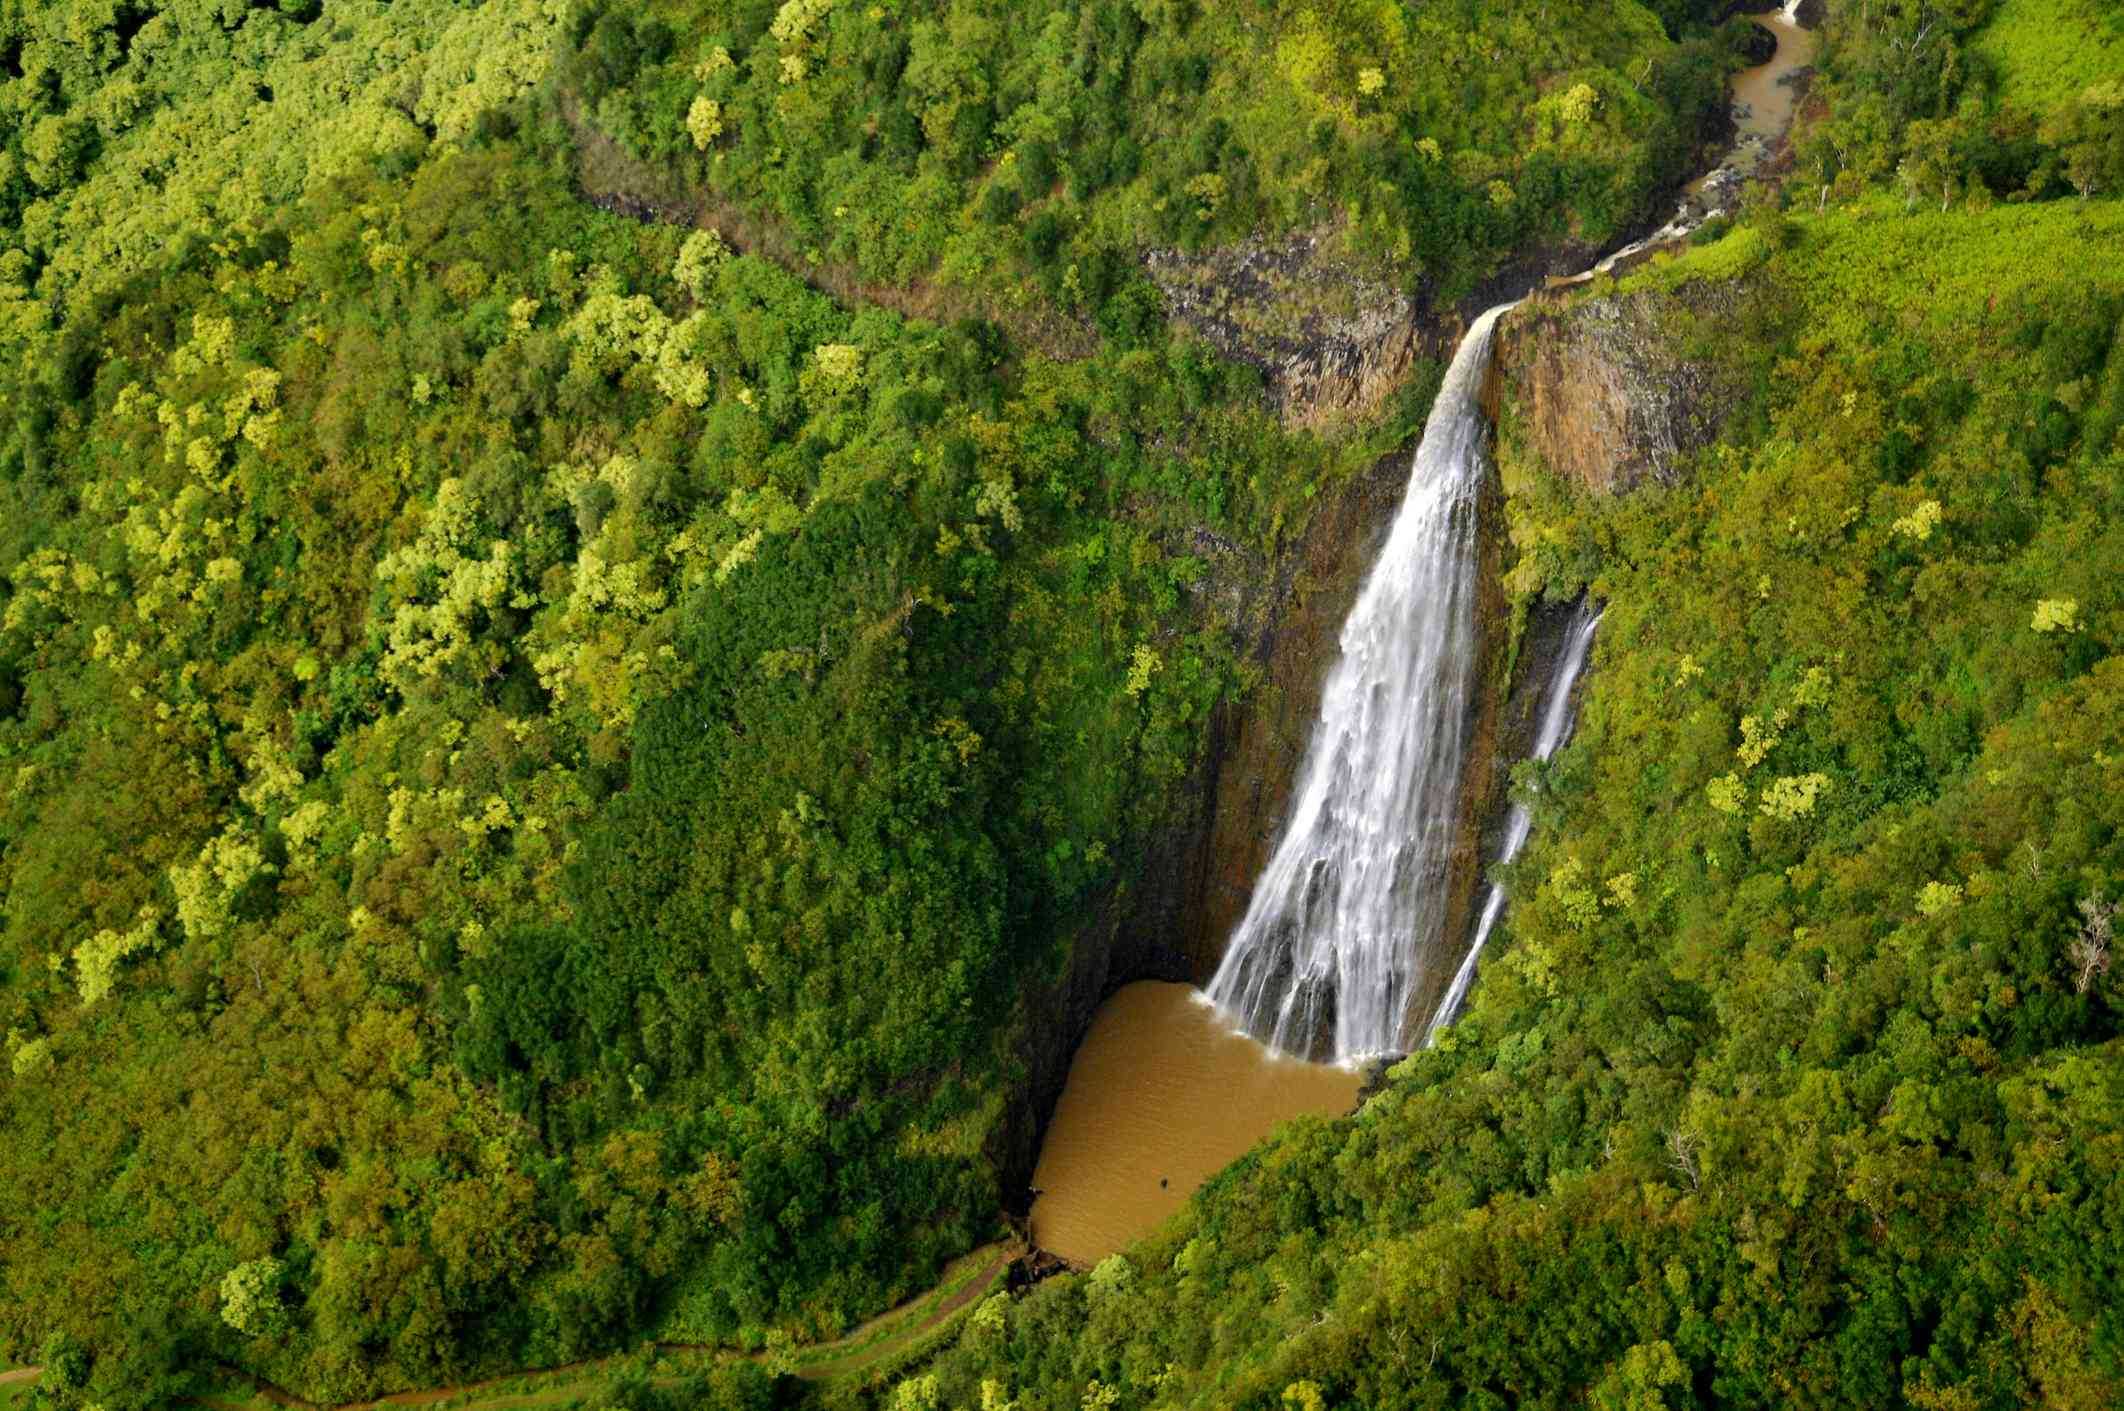 Manawaiopuna Jurassic Falls surrounded by a green forest